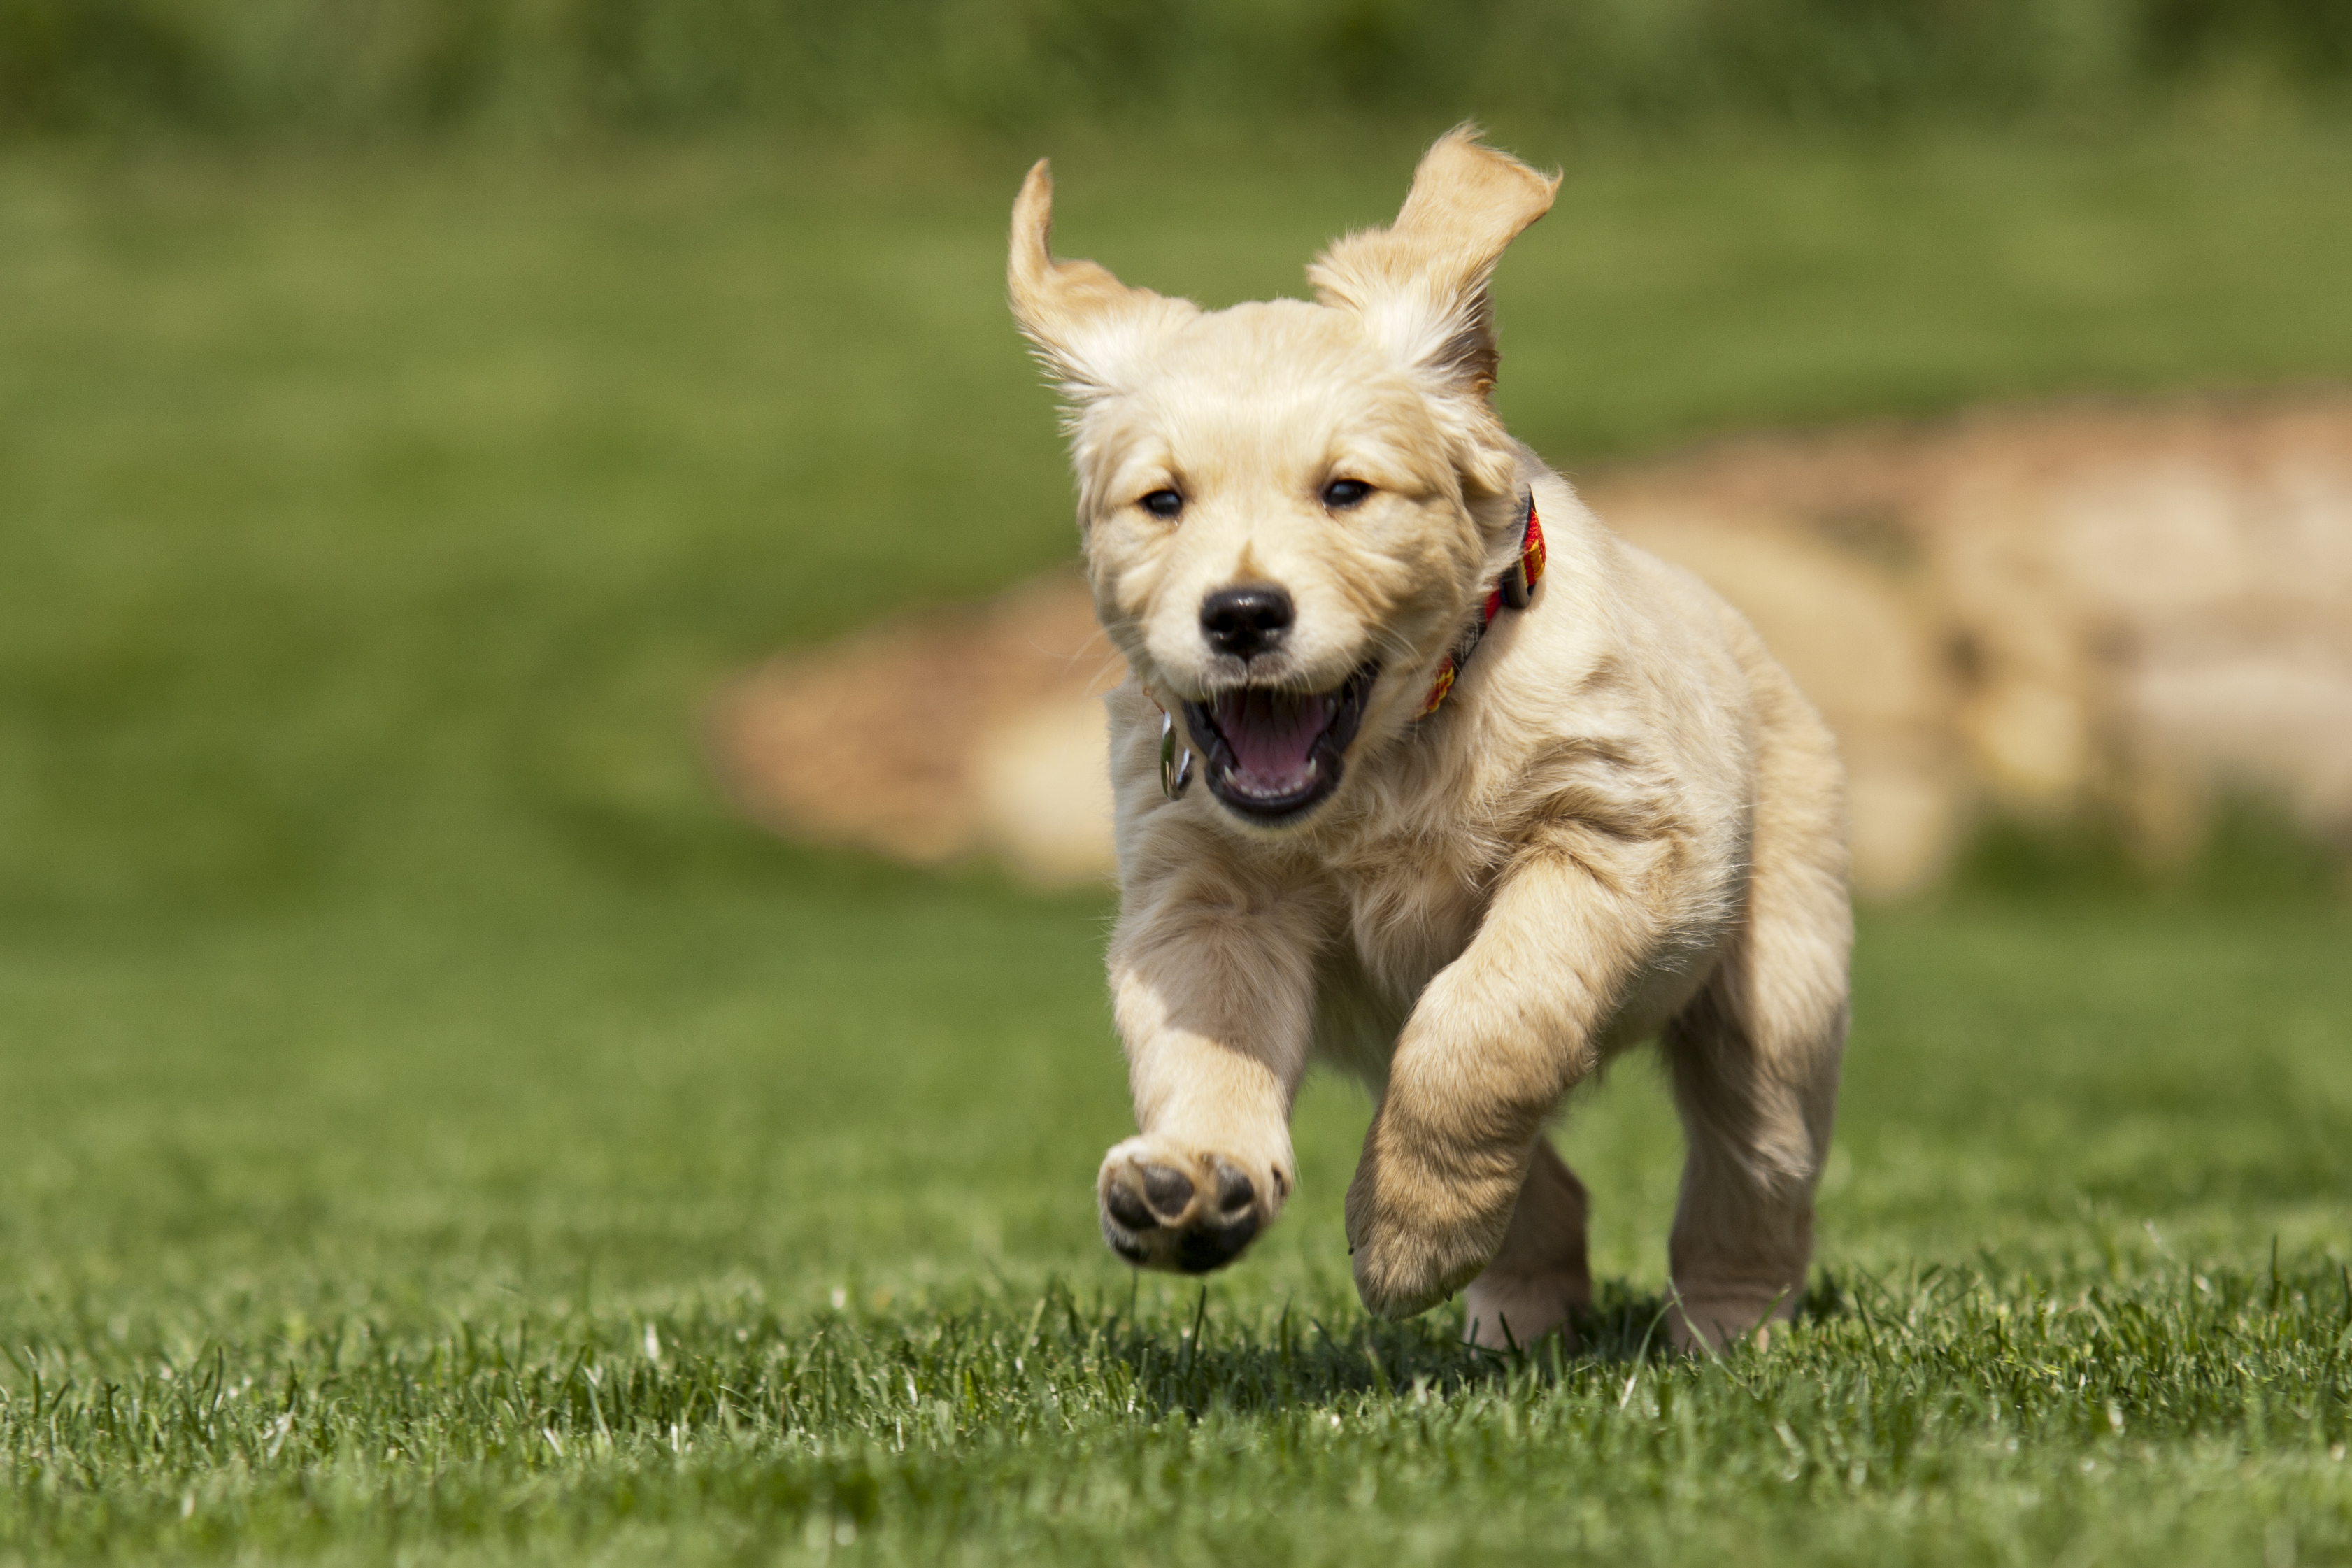 Is Your Puppy Old Enough To Run With You?